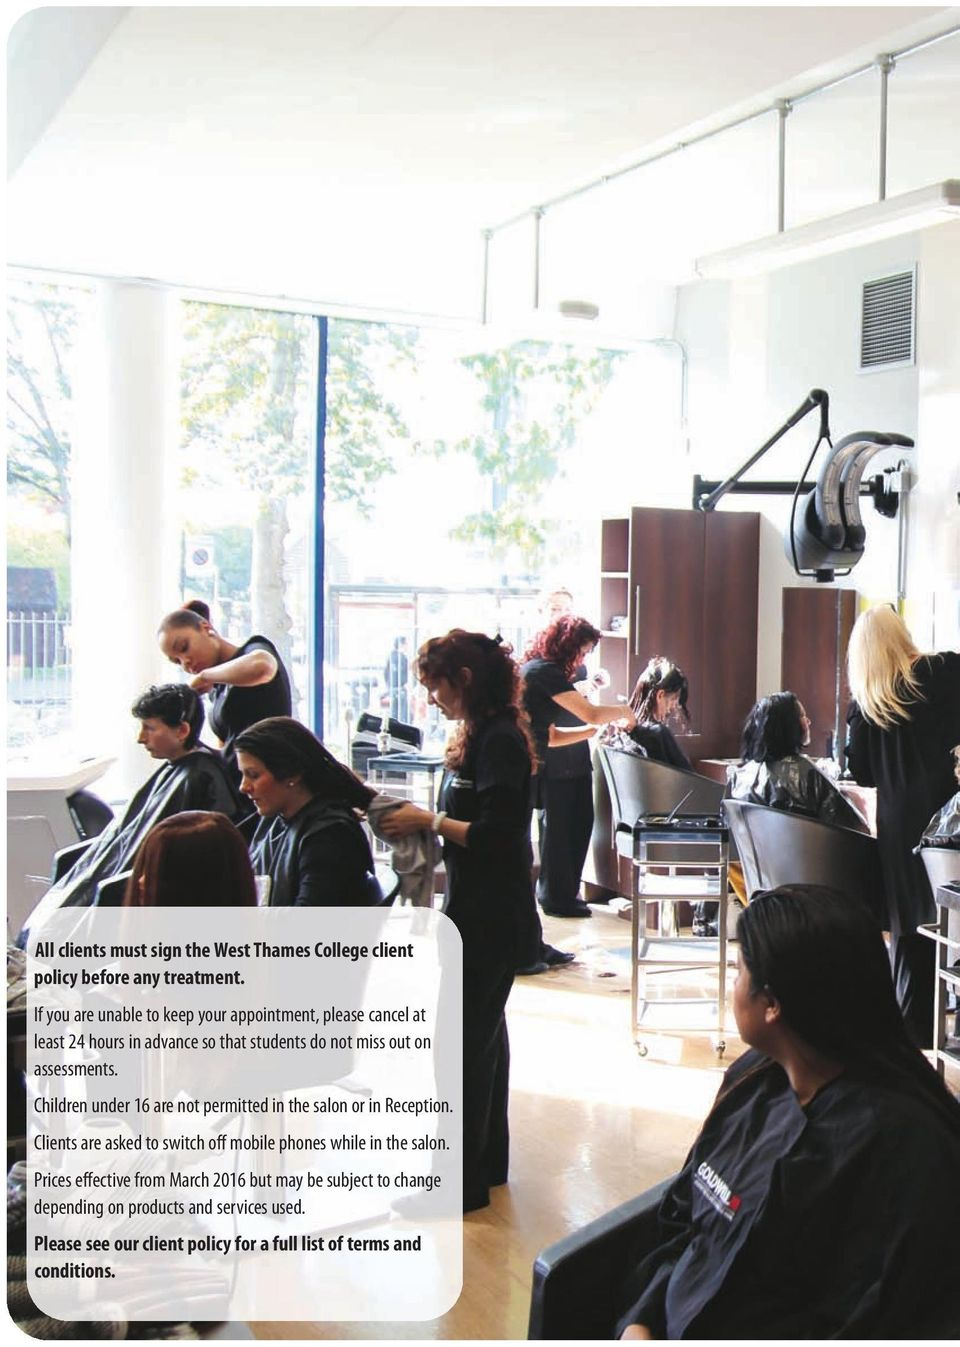 assessments. Children under 16 are not permitted in the salon or in Reception.